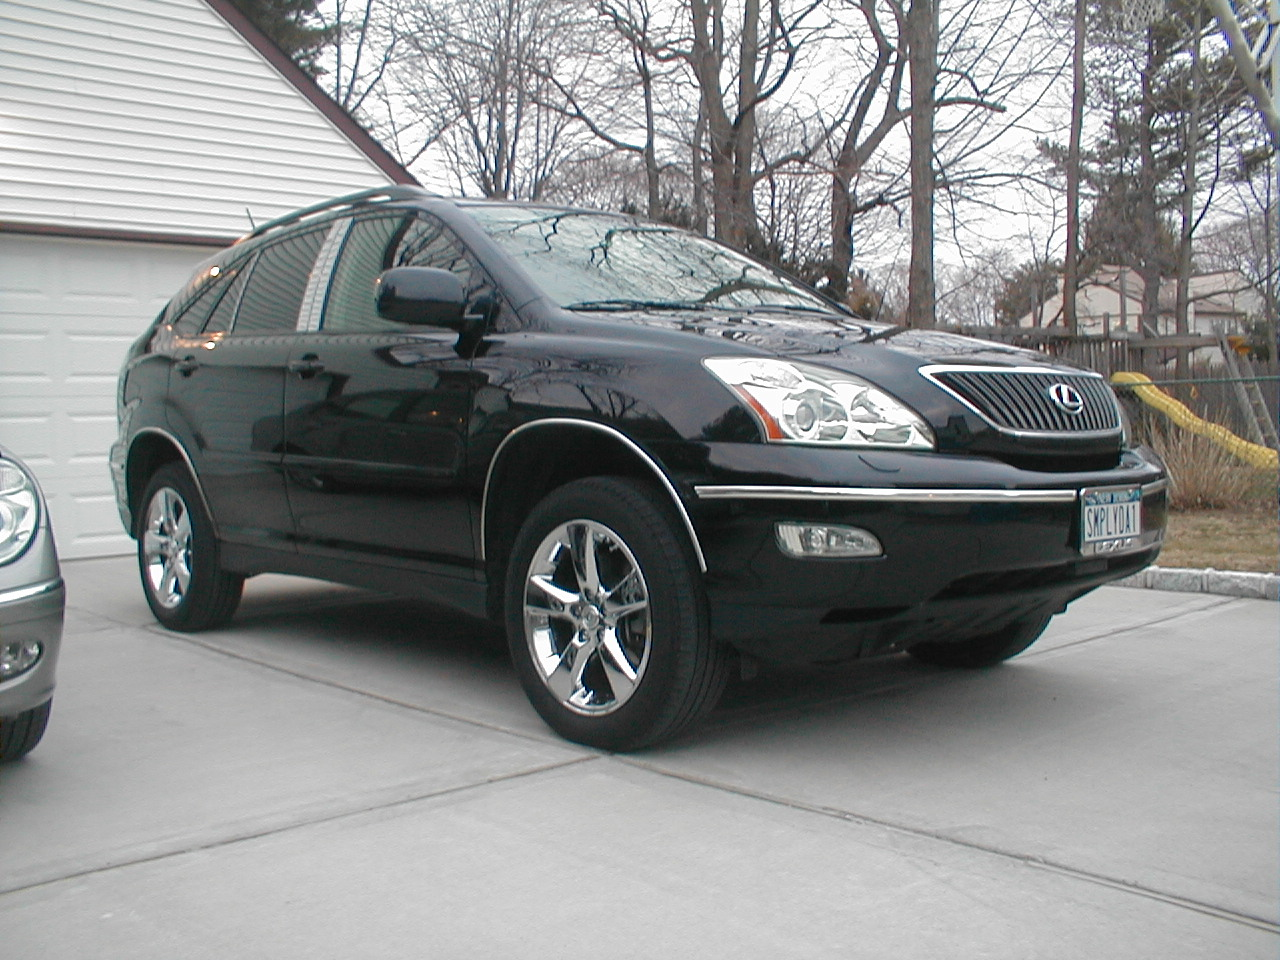 2004 Lexus RX 330 Base AWD picture